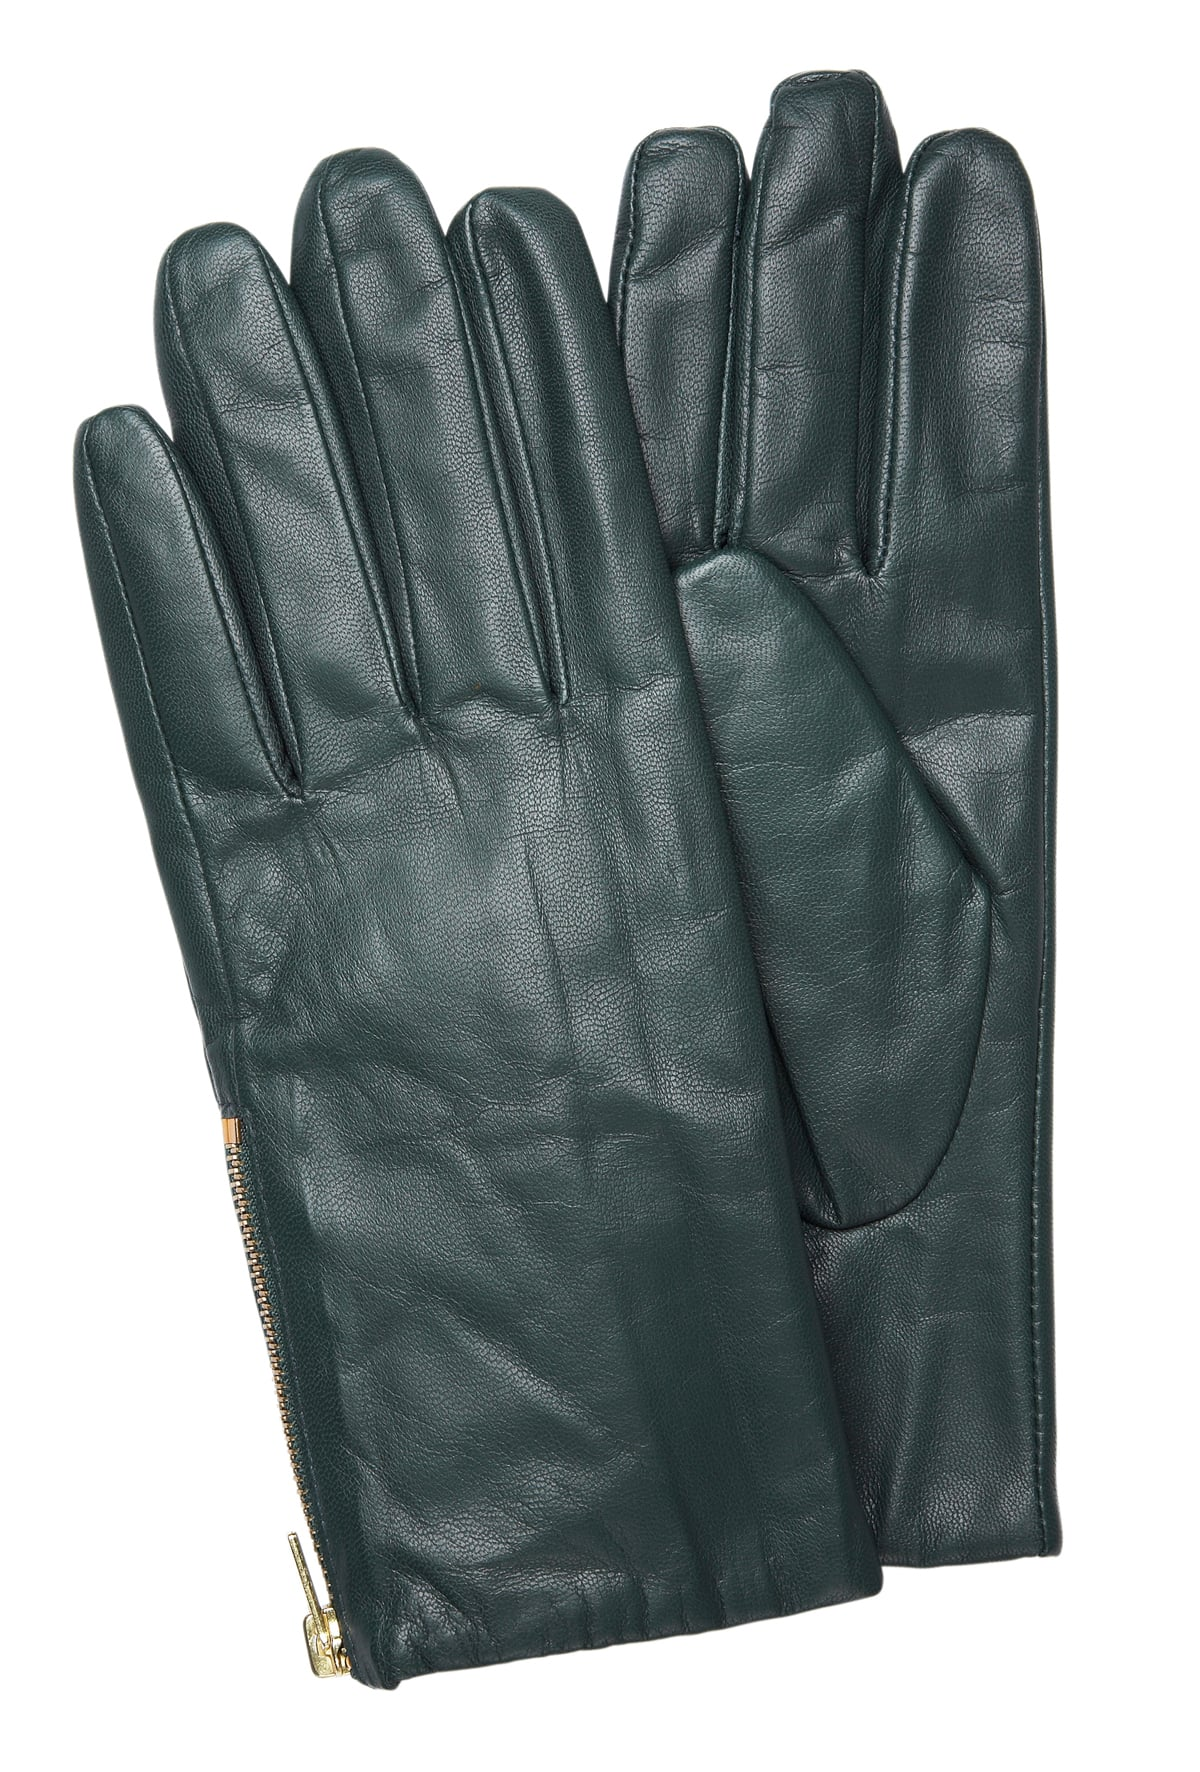 Banana Republic Leather Gloves in Emerald